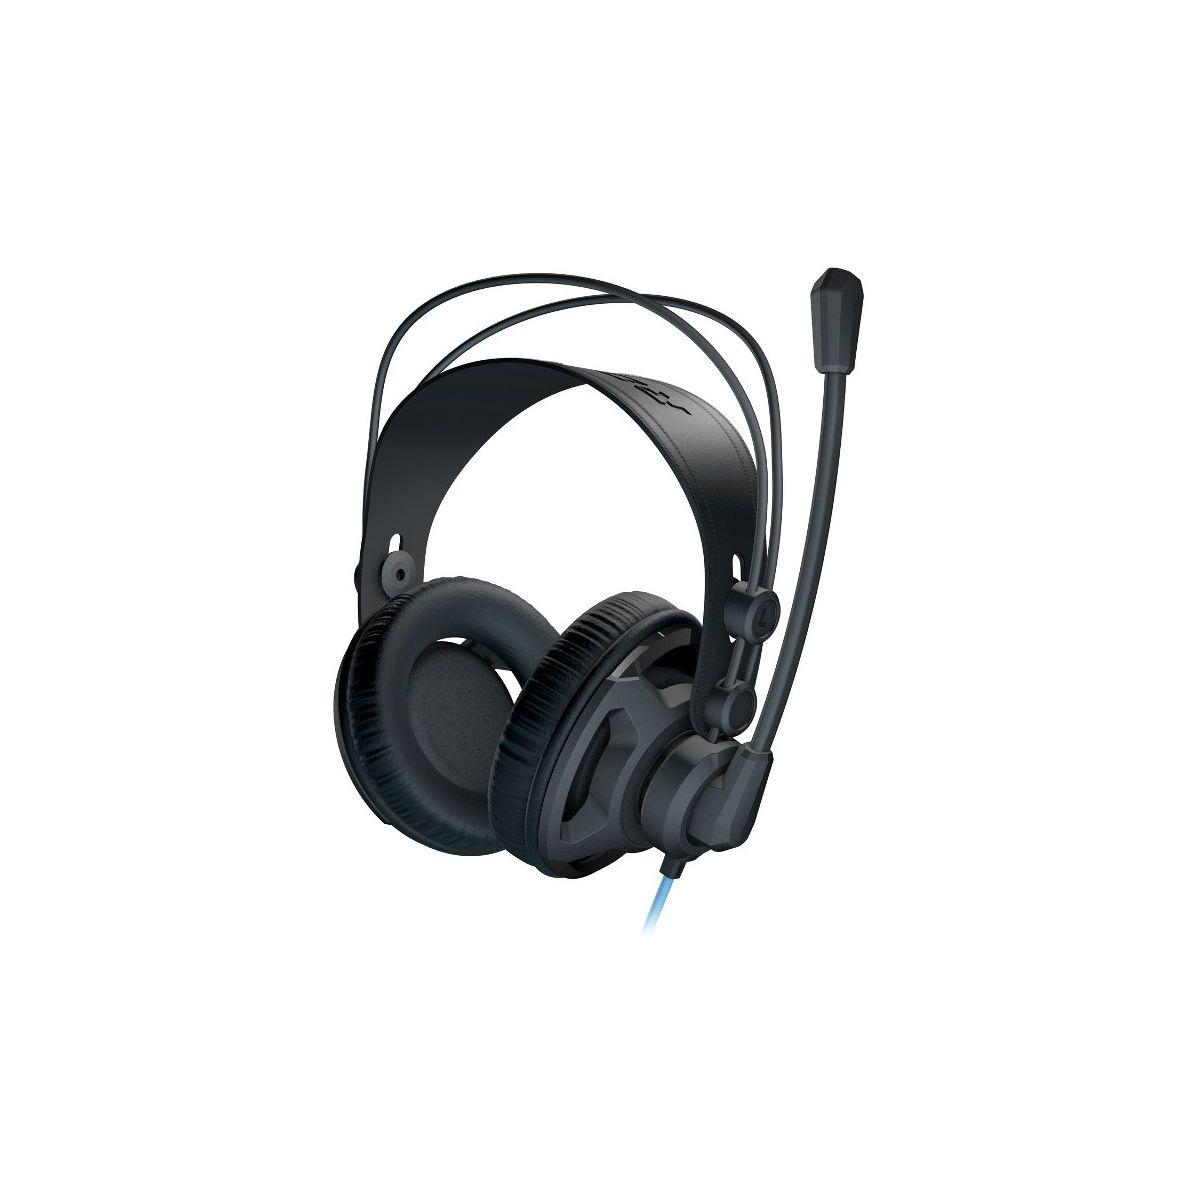 Casque micro gamer roccat renga - studio grade over-ear - 7% de remise immédiate avec le code : multi7 (photo)